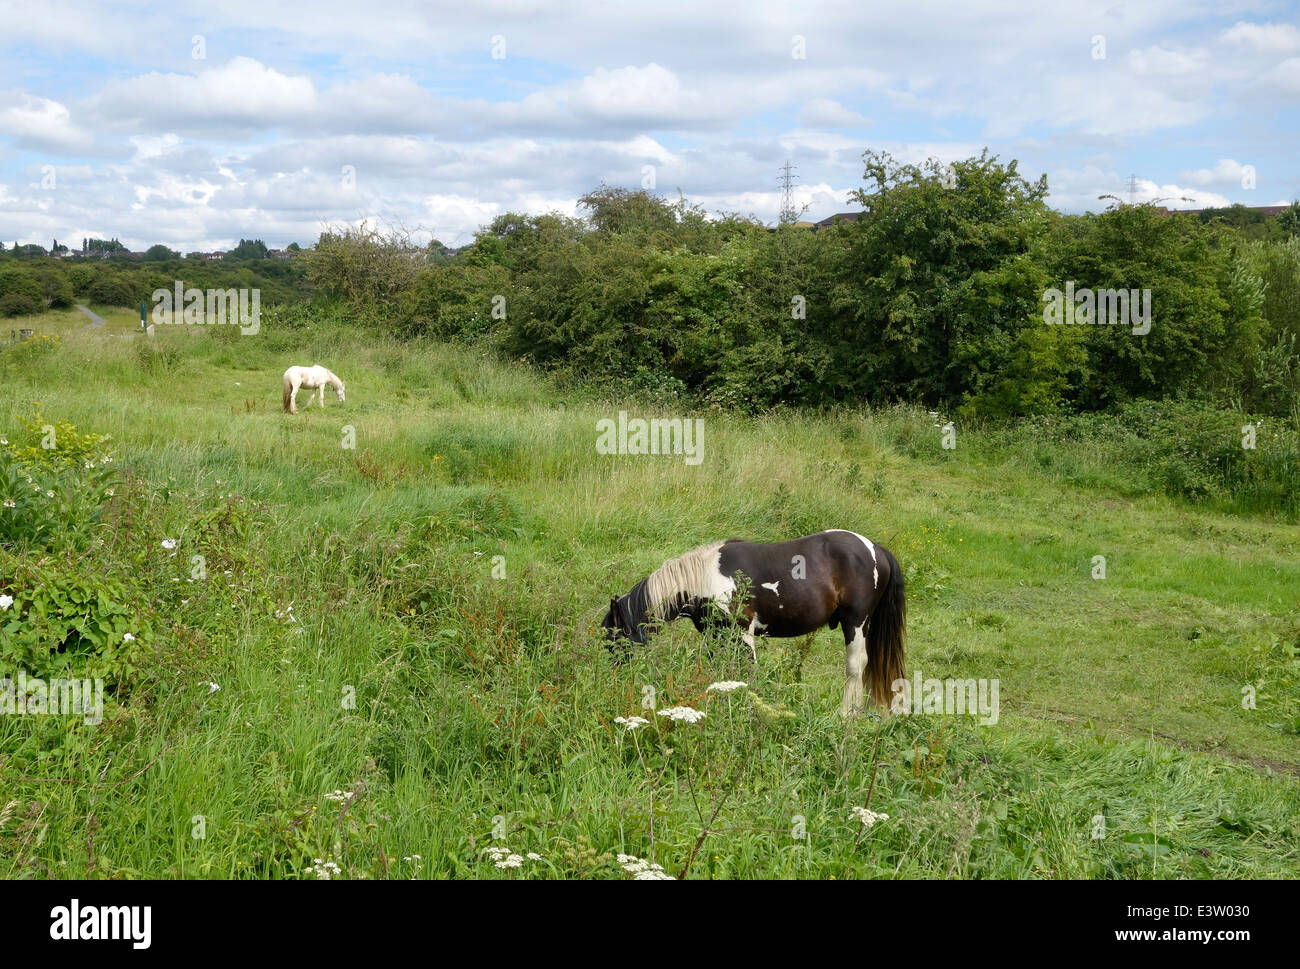 Horses Grazing on Rough Ground at Buckpool & Fens Pool Nature Reserve, Brierley Hill, West Midlands, England, UK Stock Photo